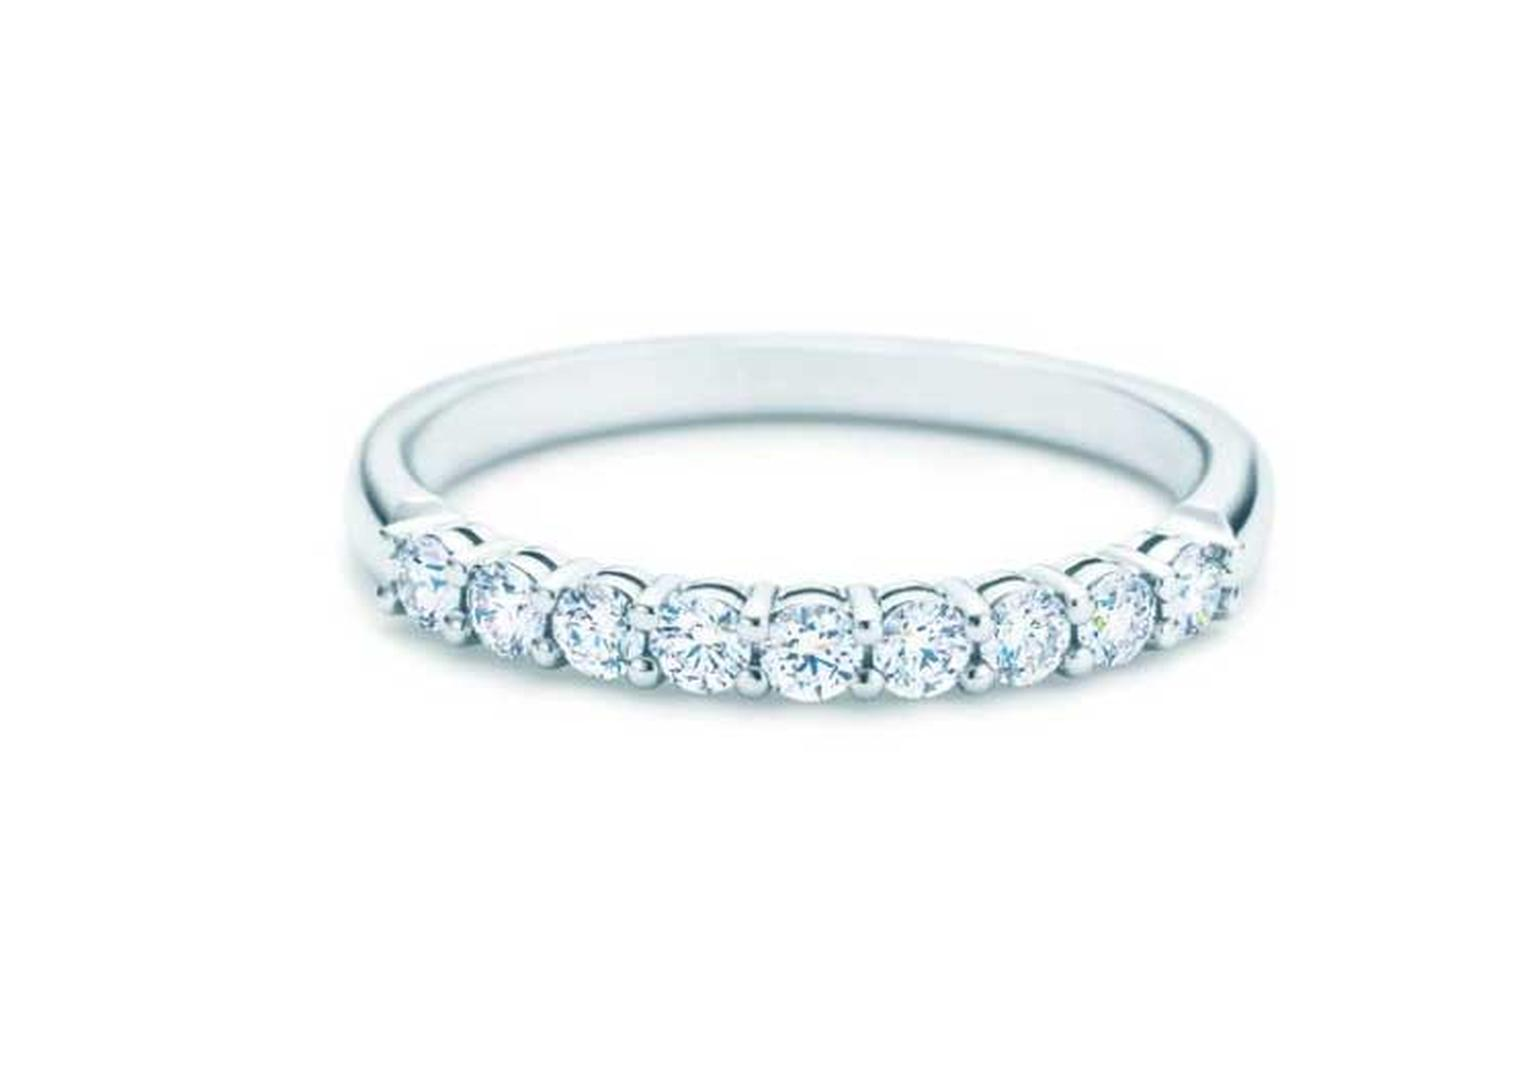 Tiffany & Co. half circle eternity ring in platinum, set with round brilliant diamonds.